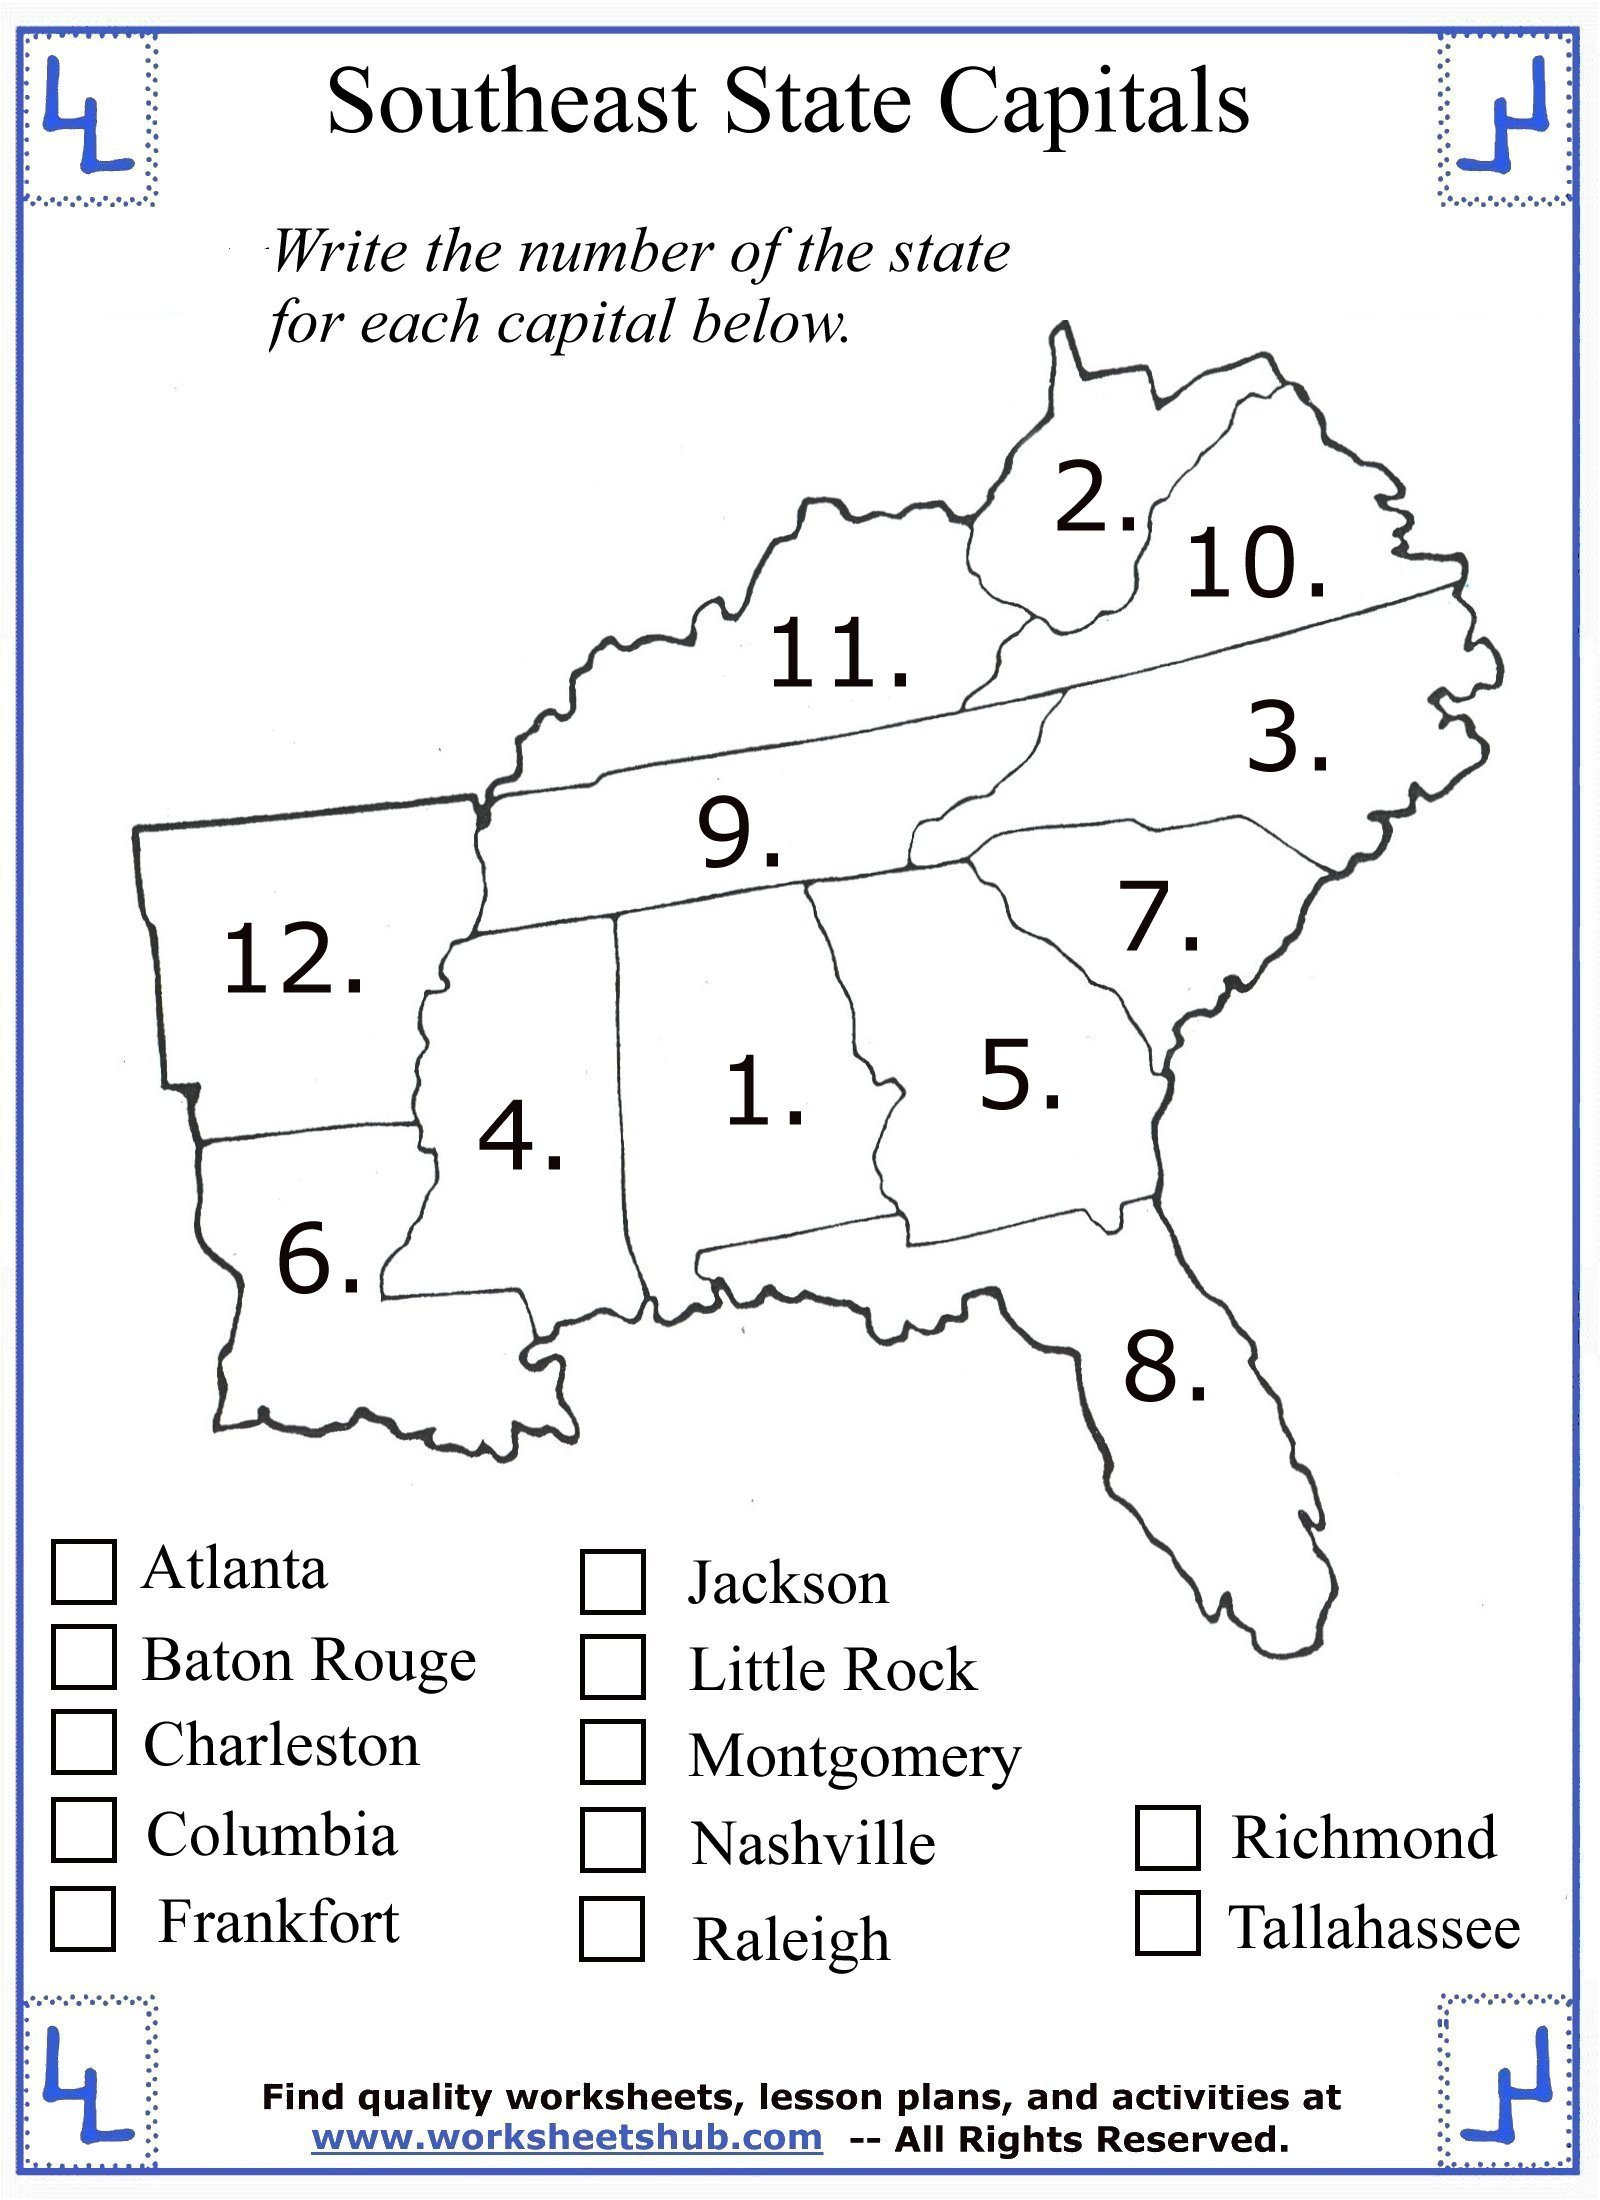 Social Studies Worksheet 1st Grade 4th Grade social Stu S southeast Region States